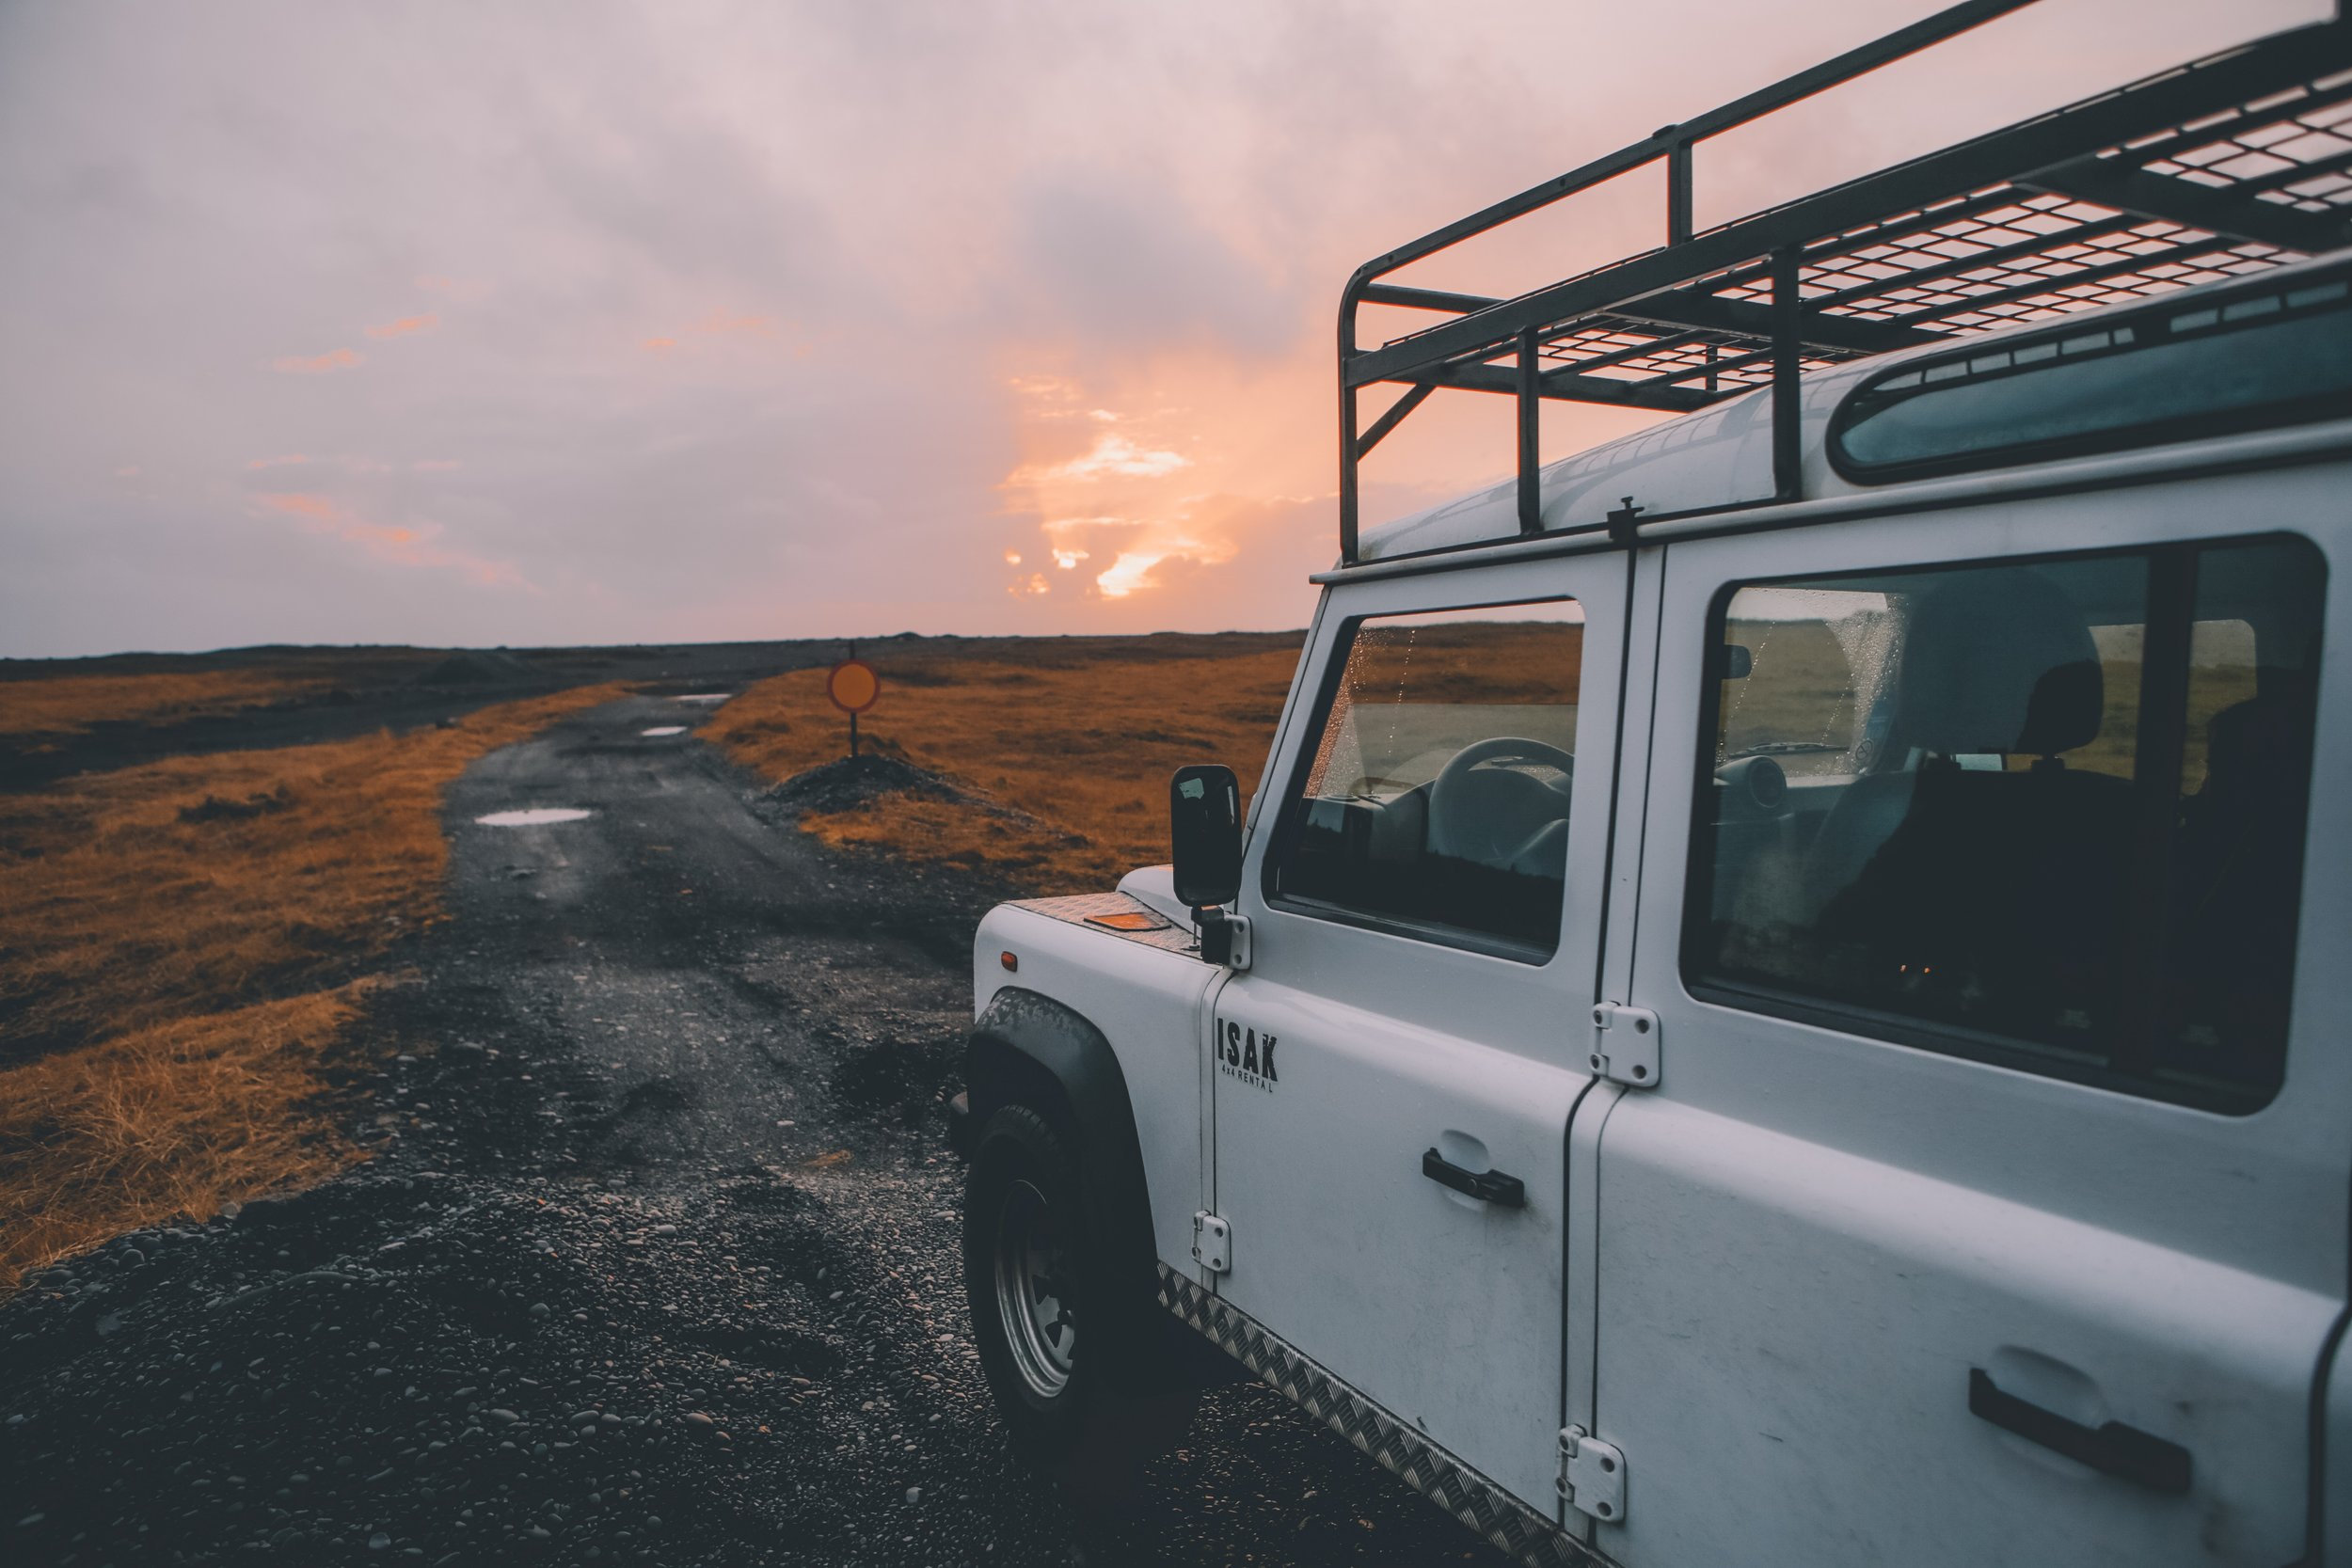 The joy of the open road - photo from unsplash, by Tim Trad.